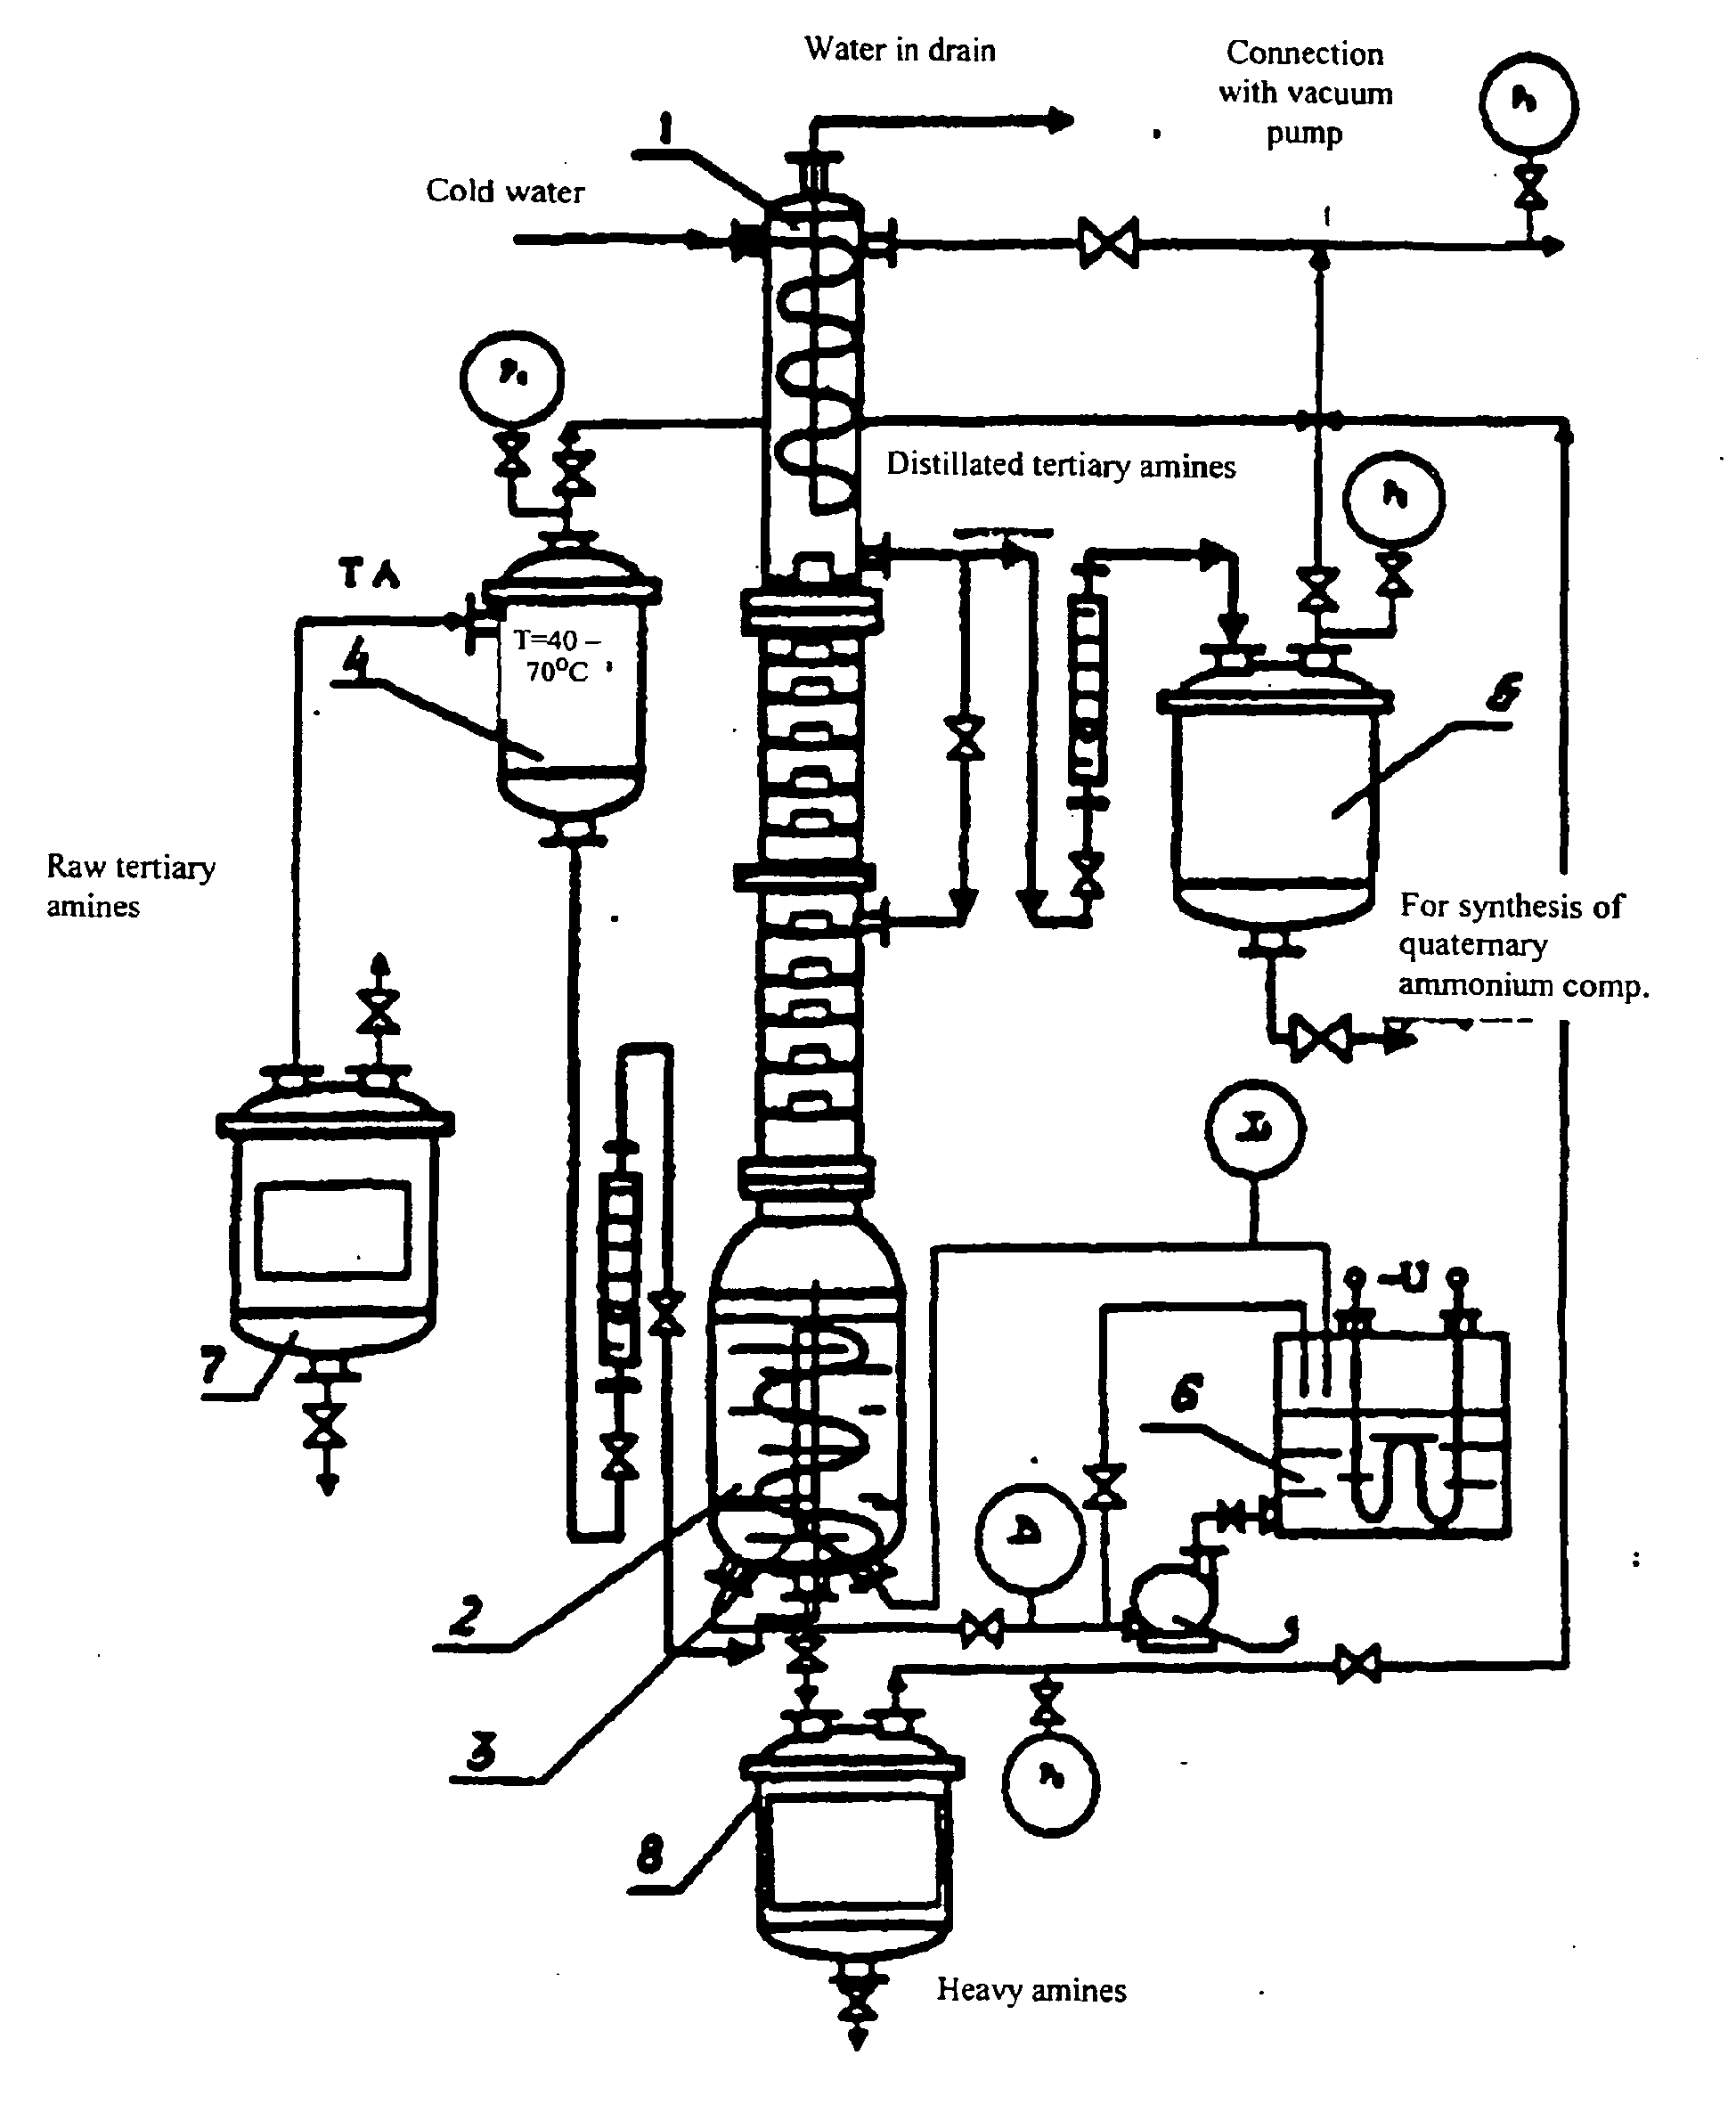 patent ep1623746b1 - rectifying plant for purifying tertiary amines